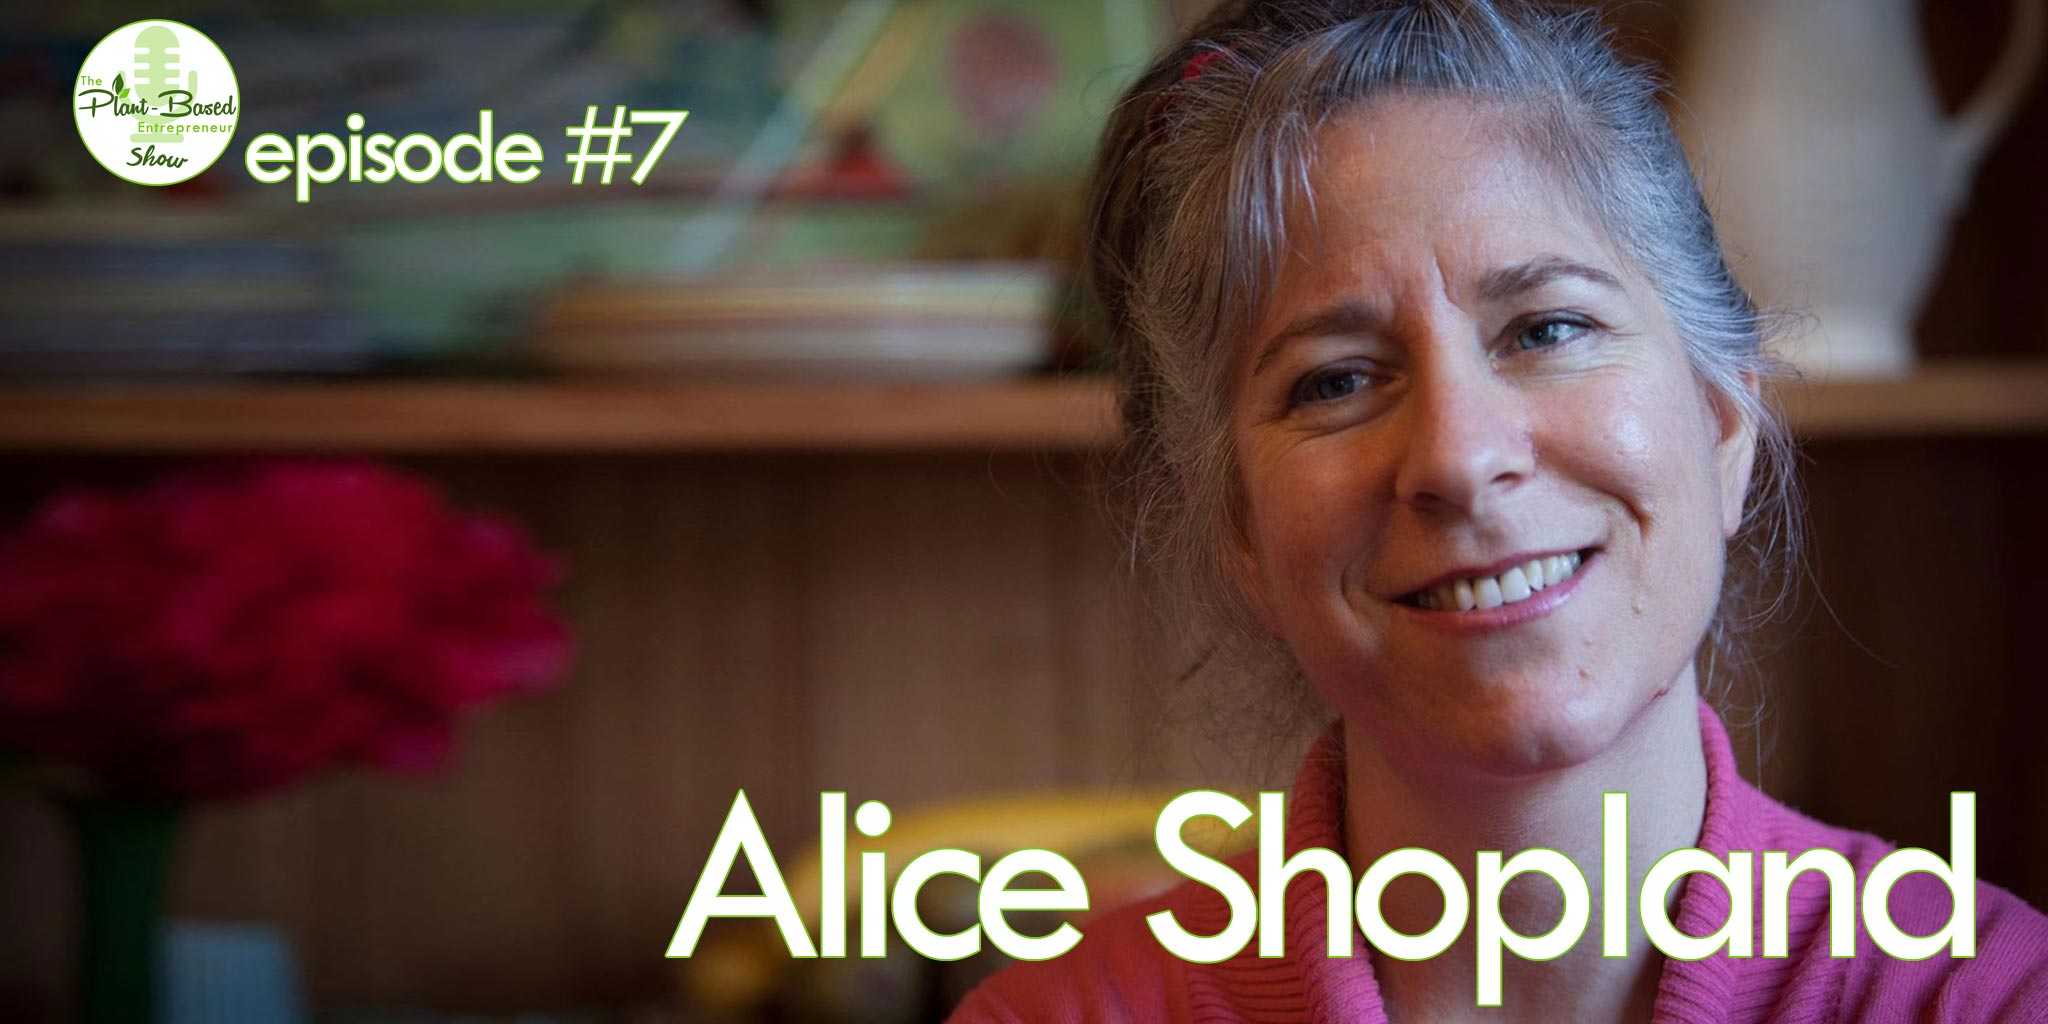 Episode #7 - Alice Shopland